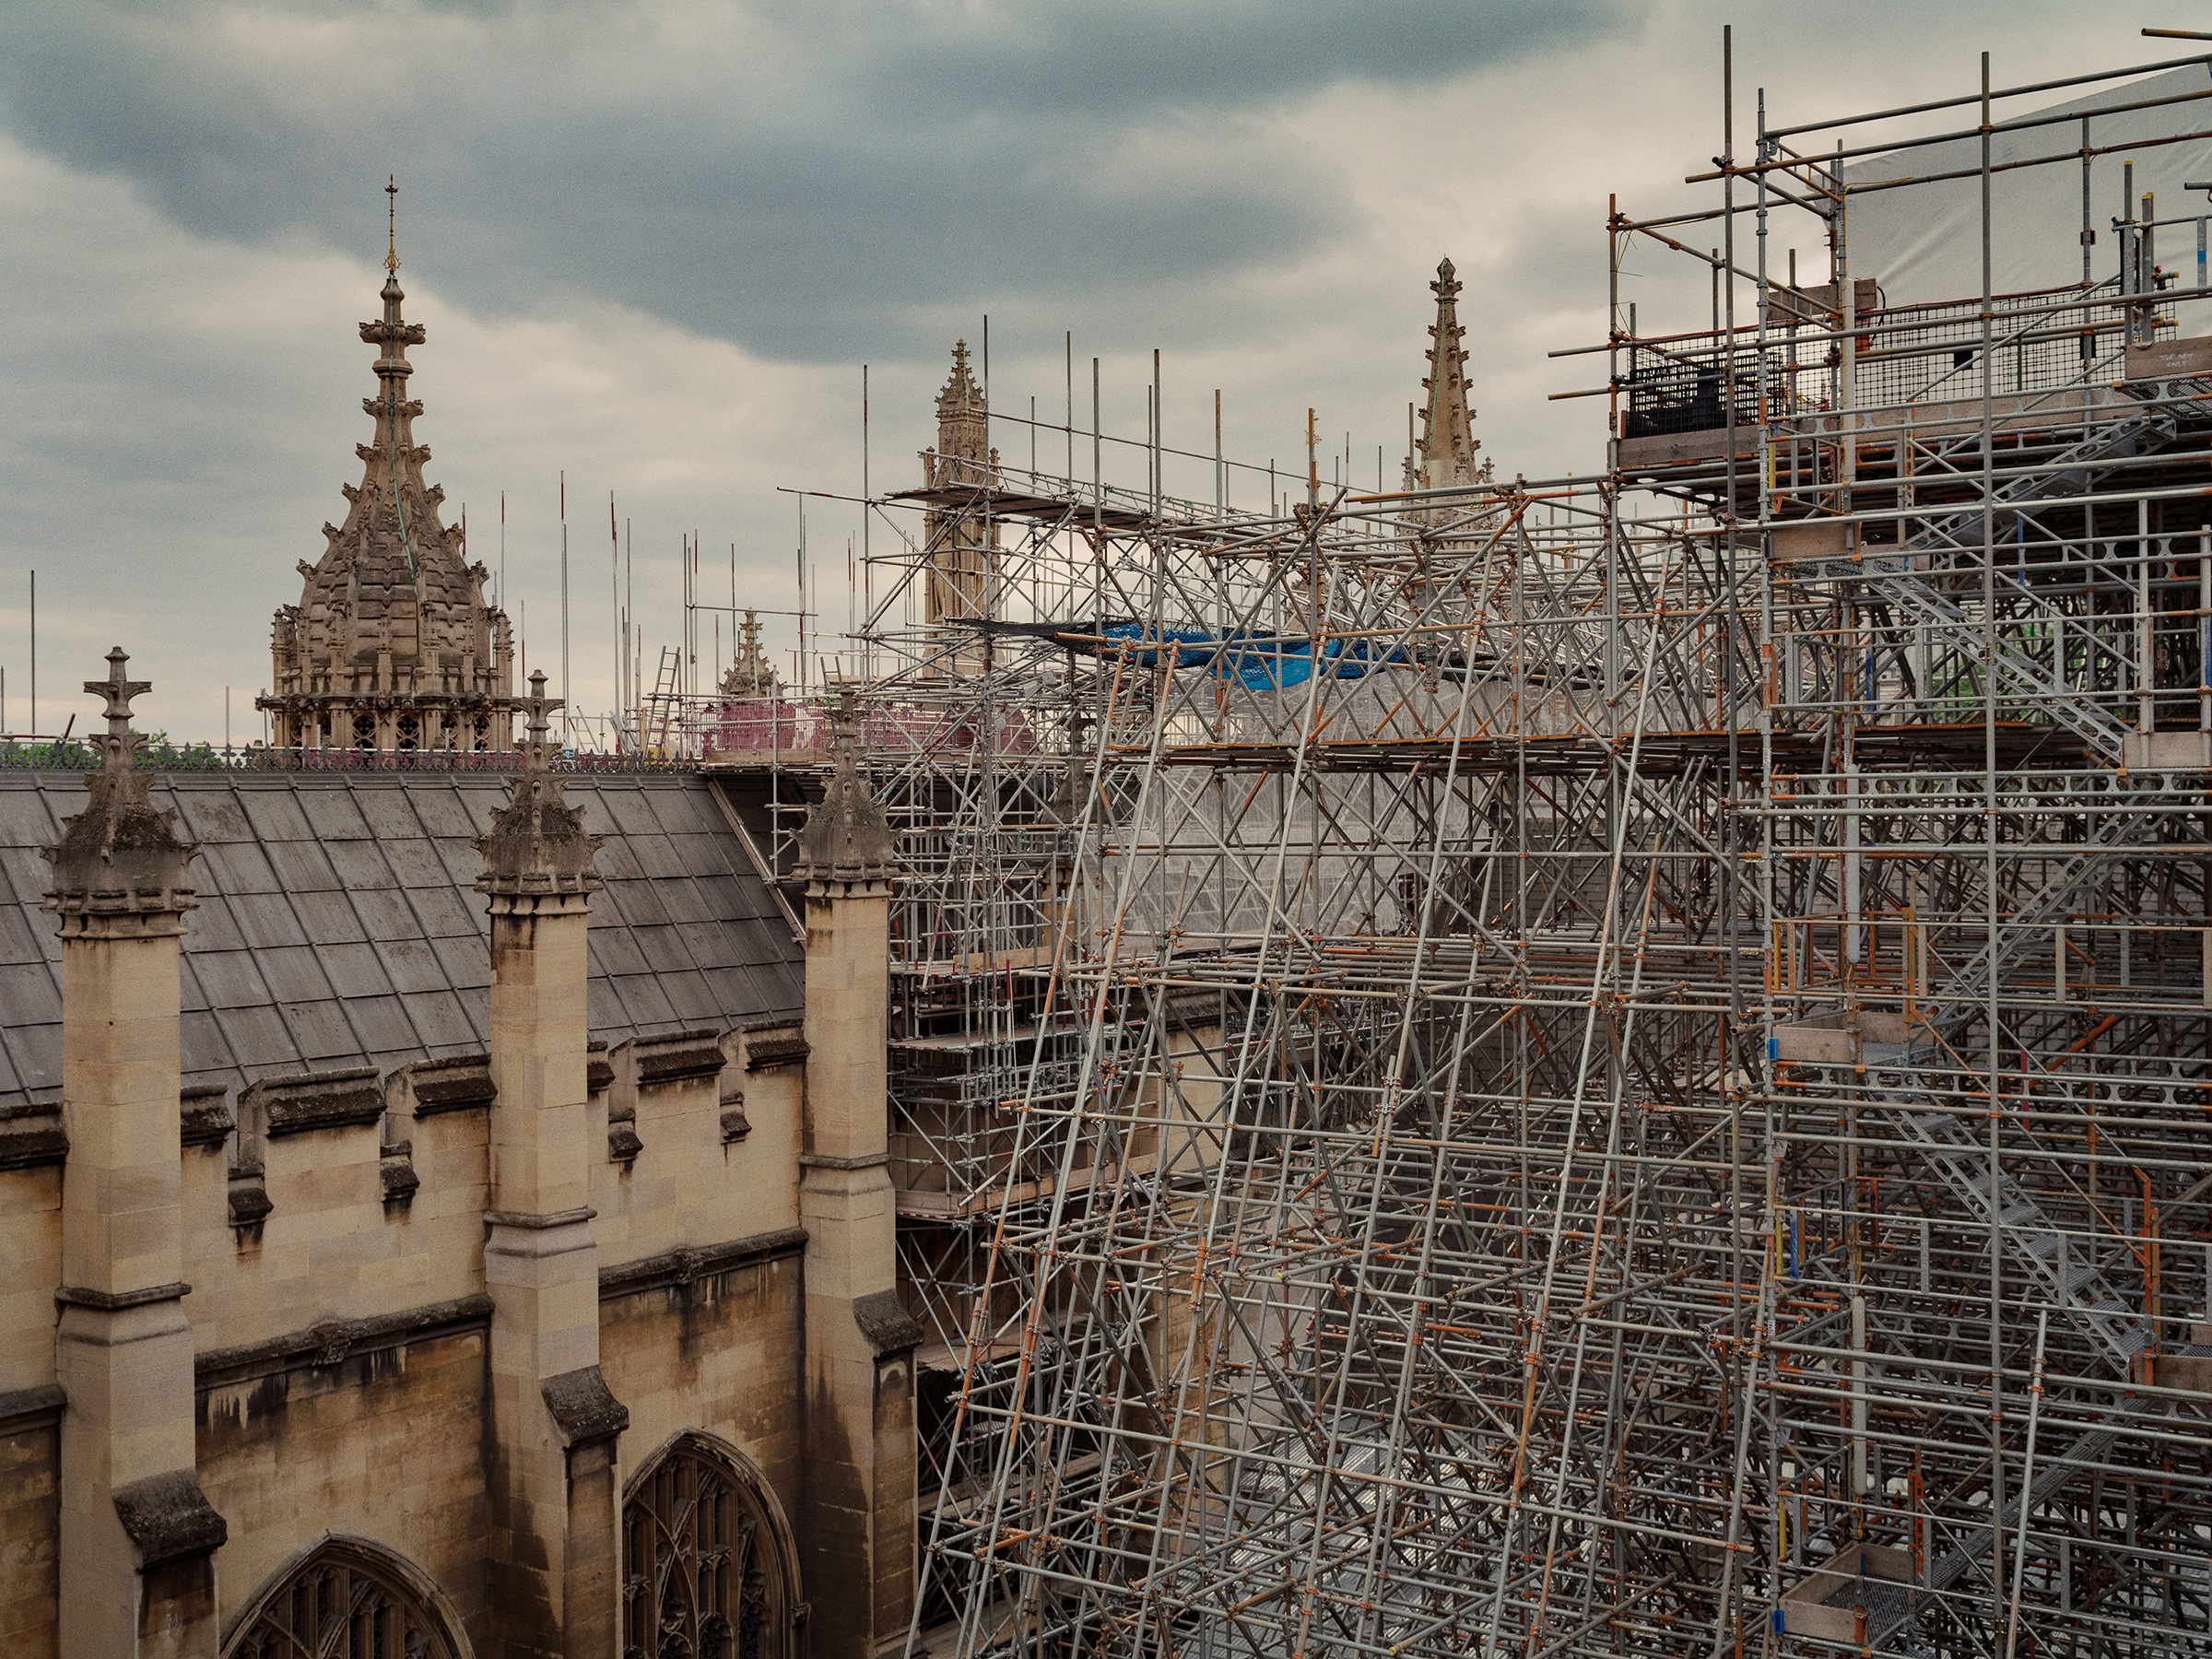 A view from the roof of the Palace of Westminster showing damage to the roof (left) and scaffolding erected for repair work (right).